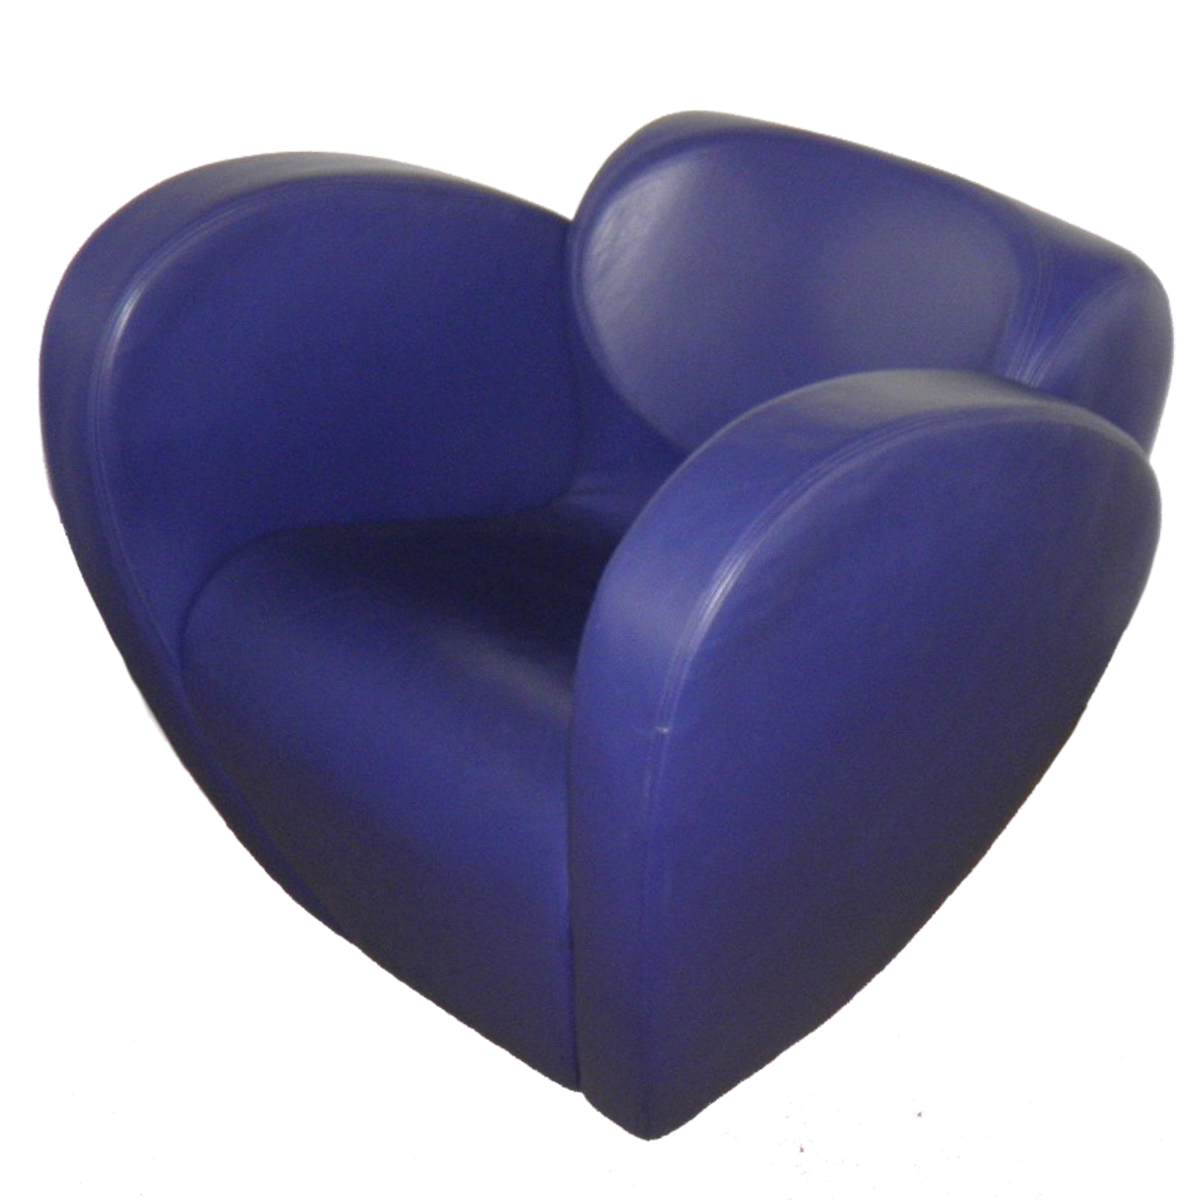 Superb Size Ten By Ron Arad For Moroso Howaboutout Vintage Bralicious Painted Fabric Chair Ideas Braliciousco